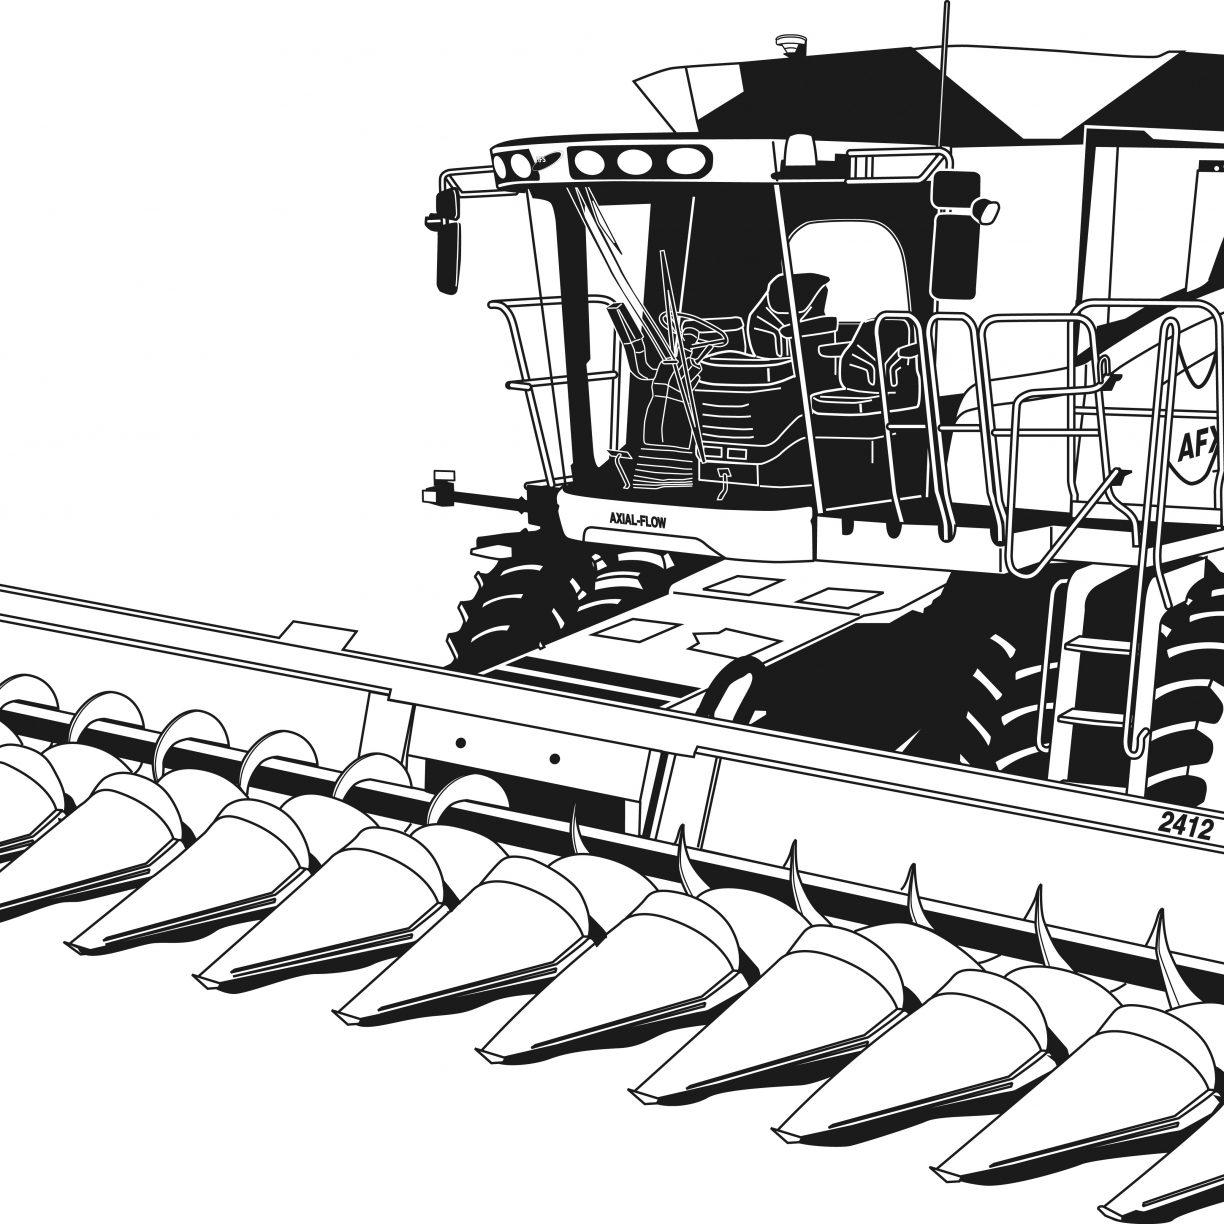 Construction Equipment Drawing at GetDrawings.com | Free for ...